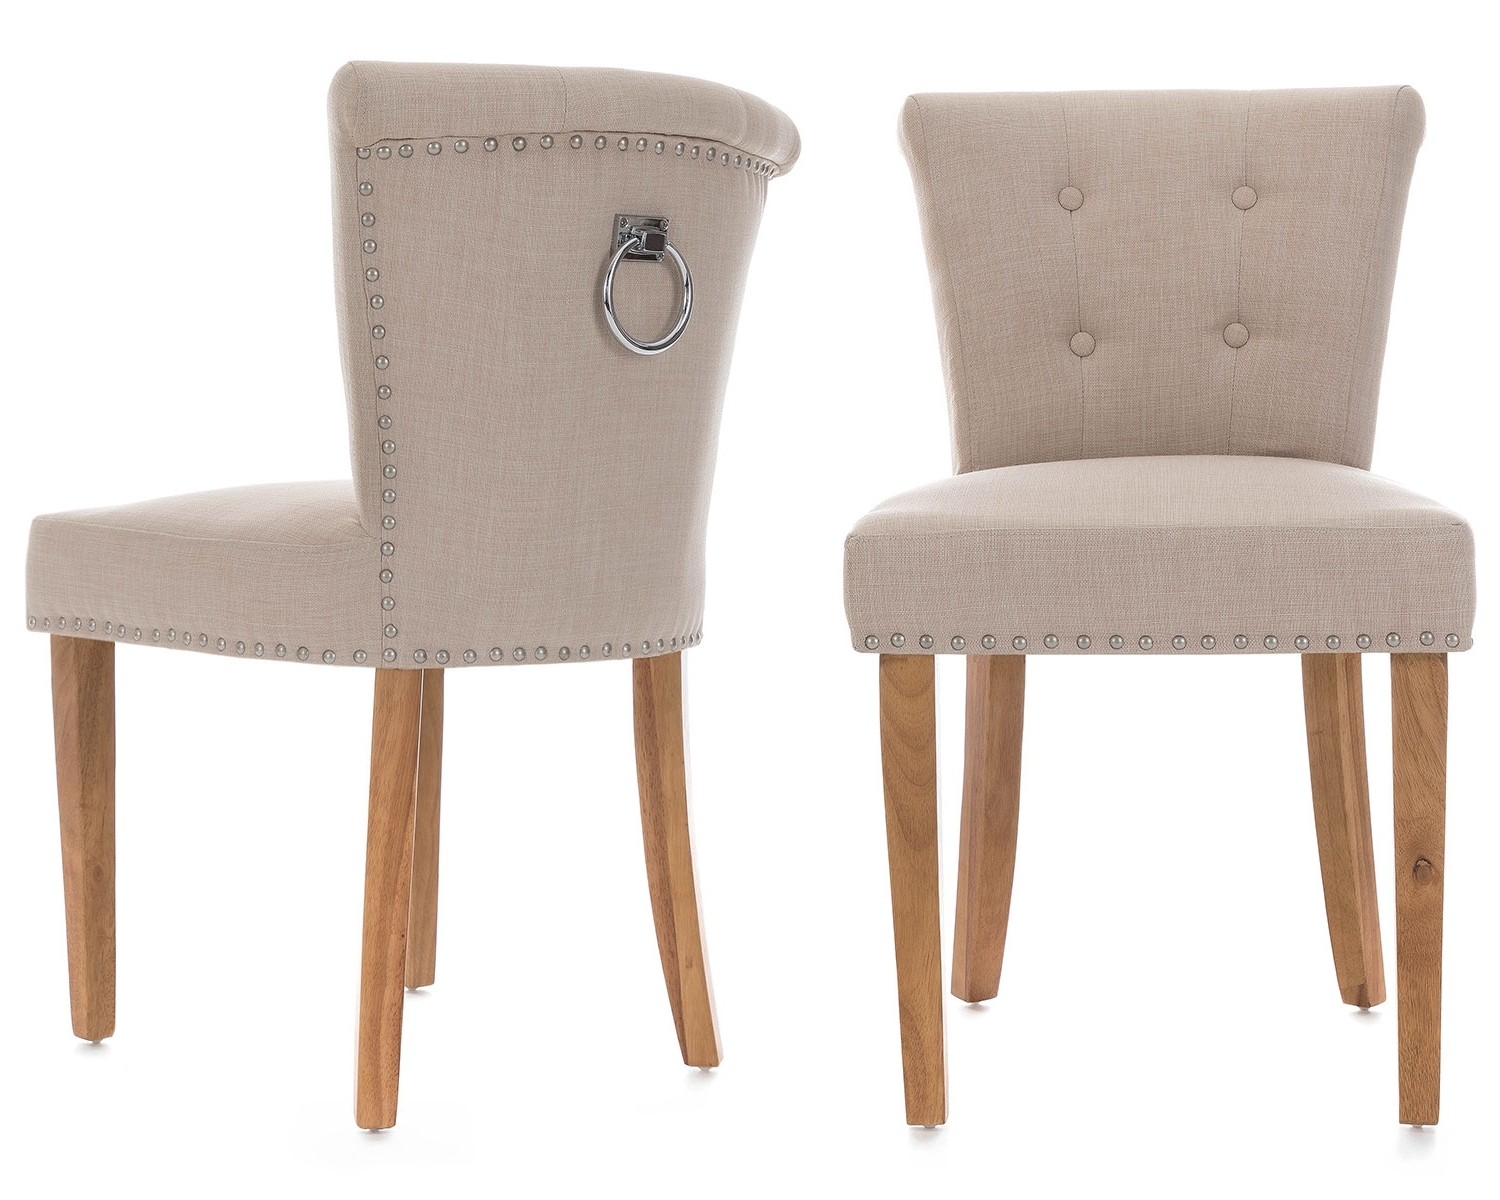 Pair Of Camden Dining Chairs In Cream Linen With Chrome Knocker And Regarding Well Liked Camden Dining Chairs (View 15 of 20)